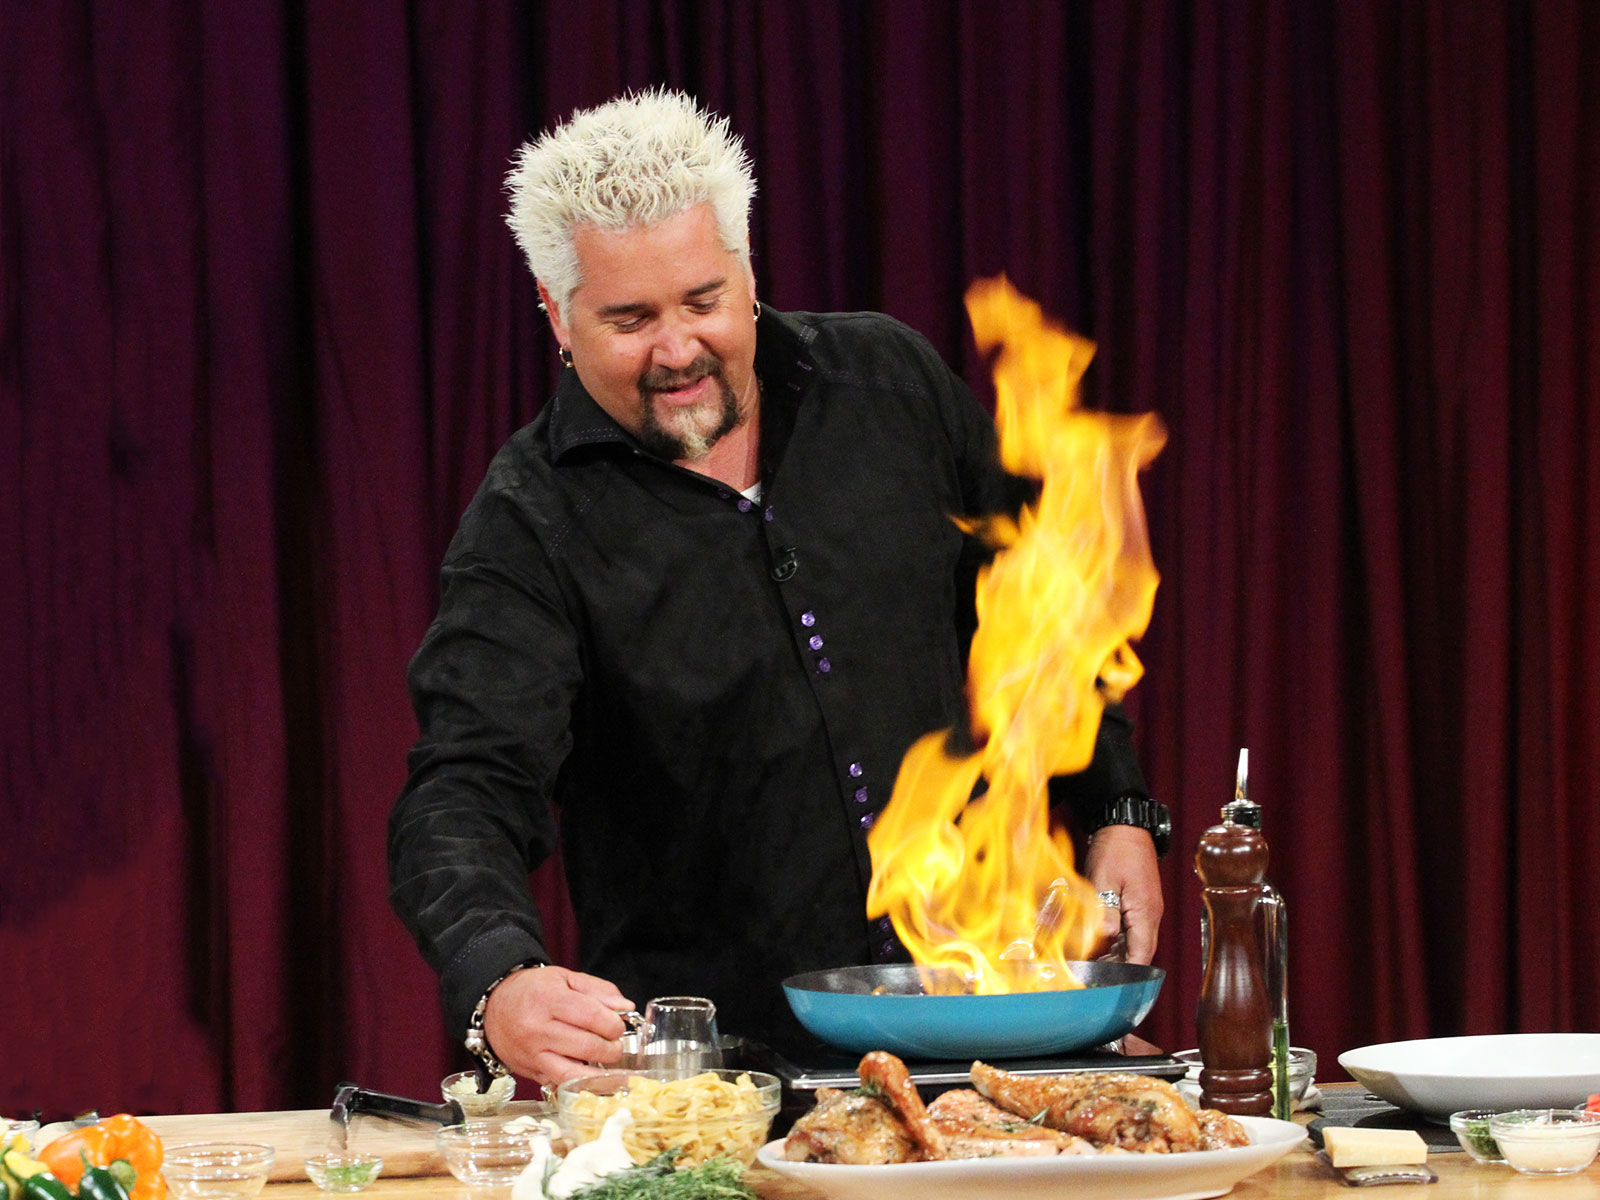 Guy Fieri says he hates that flame shirt